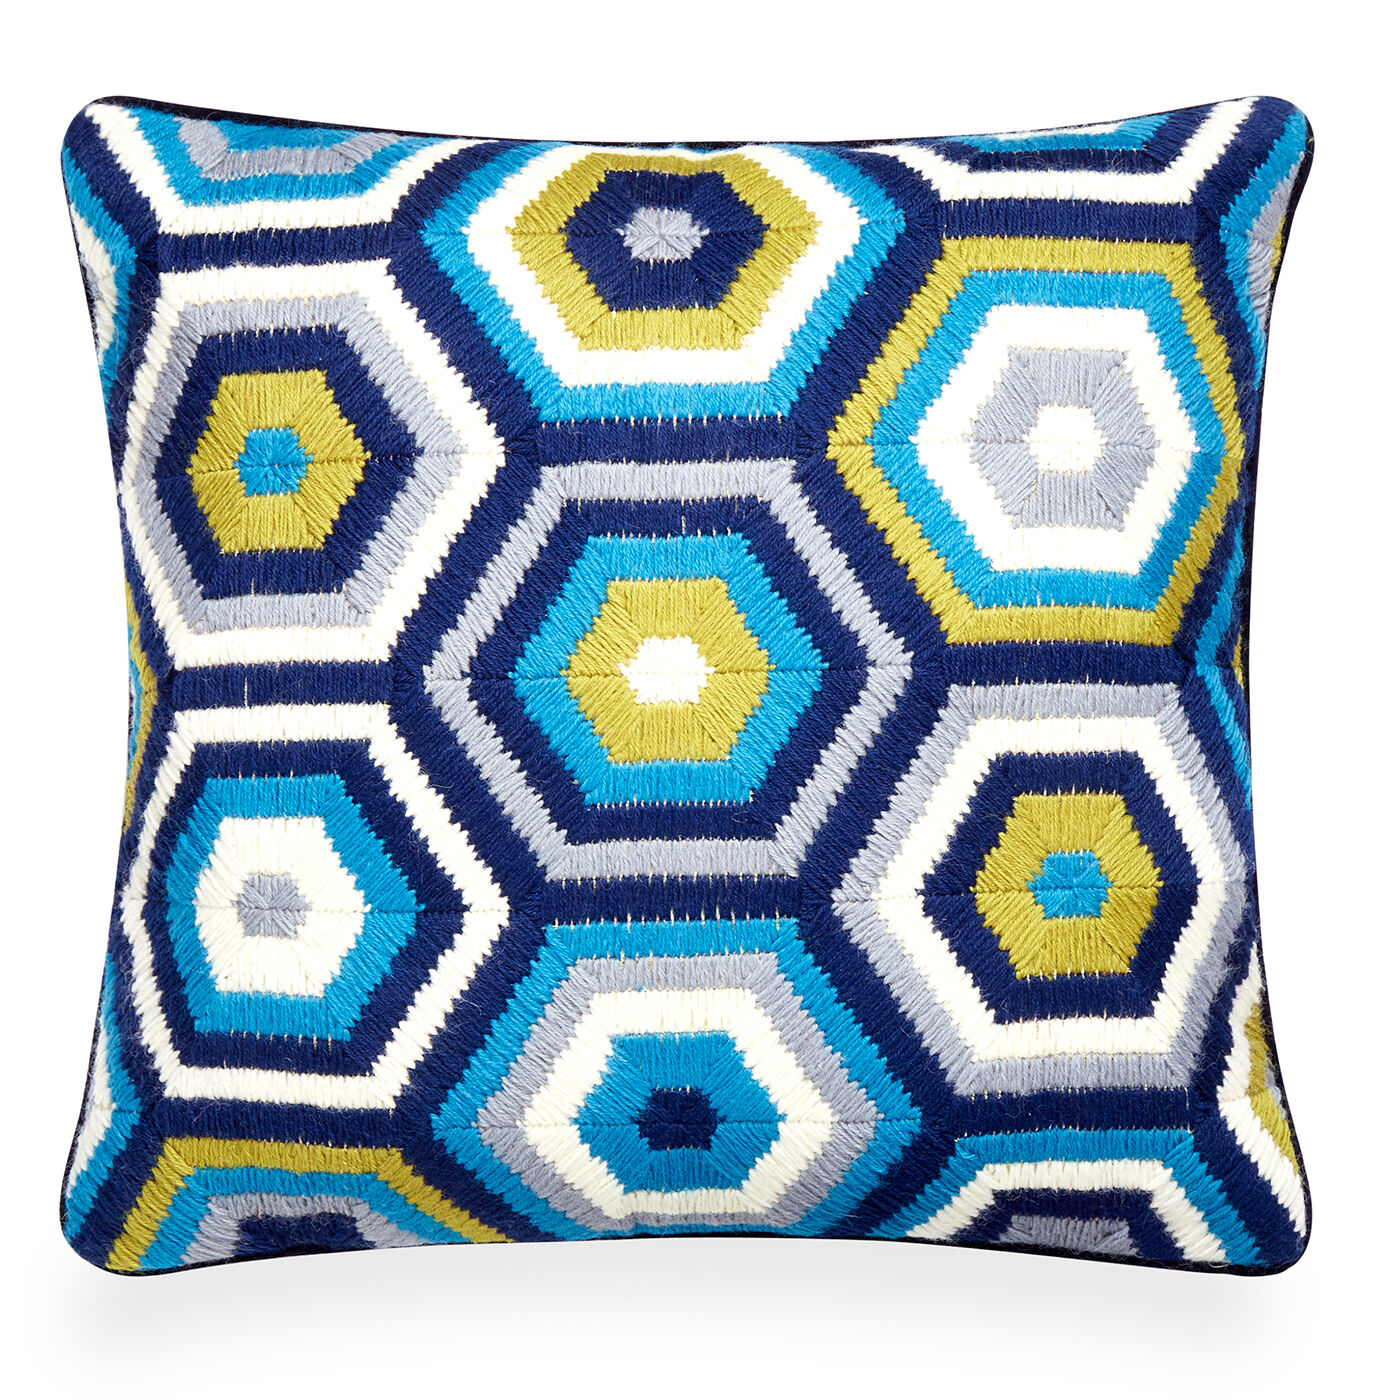 patterned turquoise bargello honeycomb throw pillow